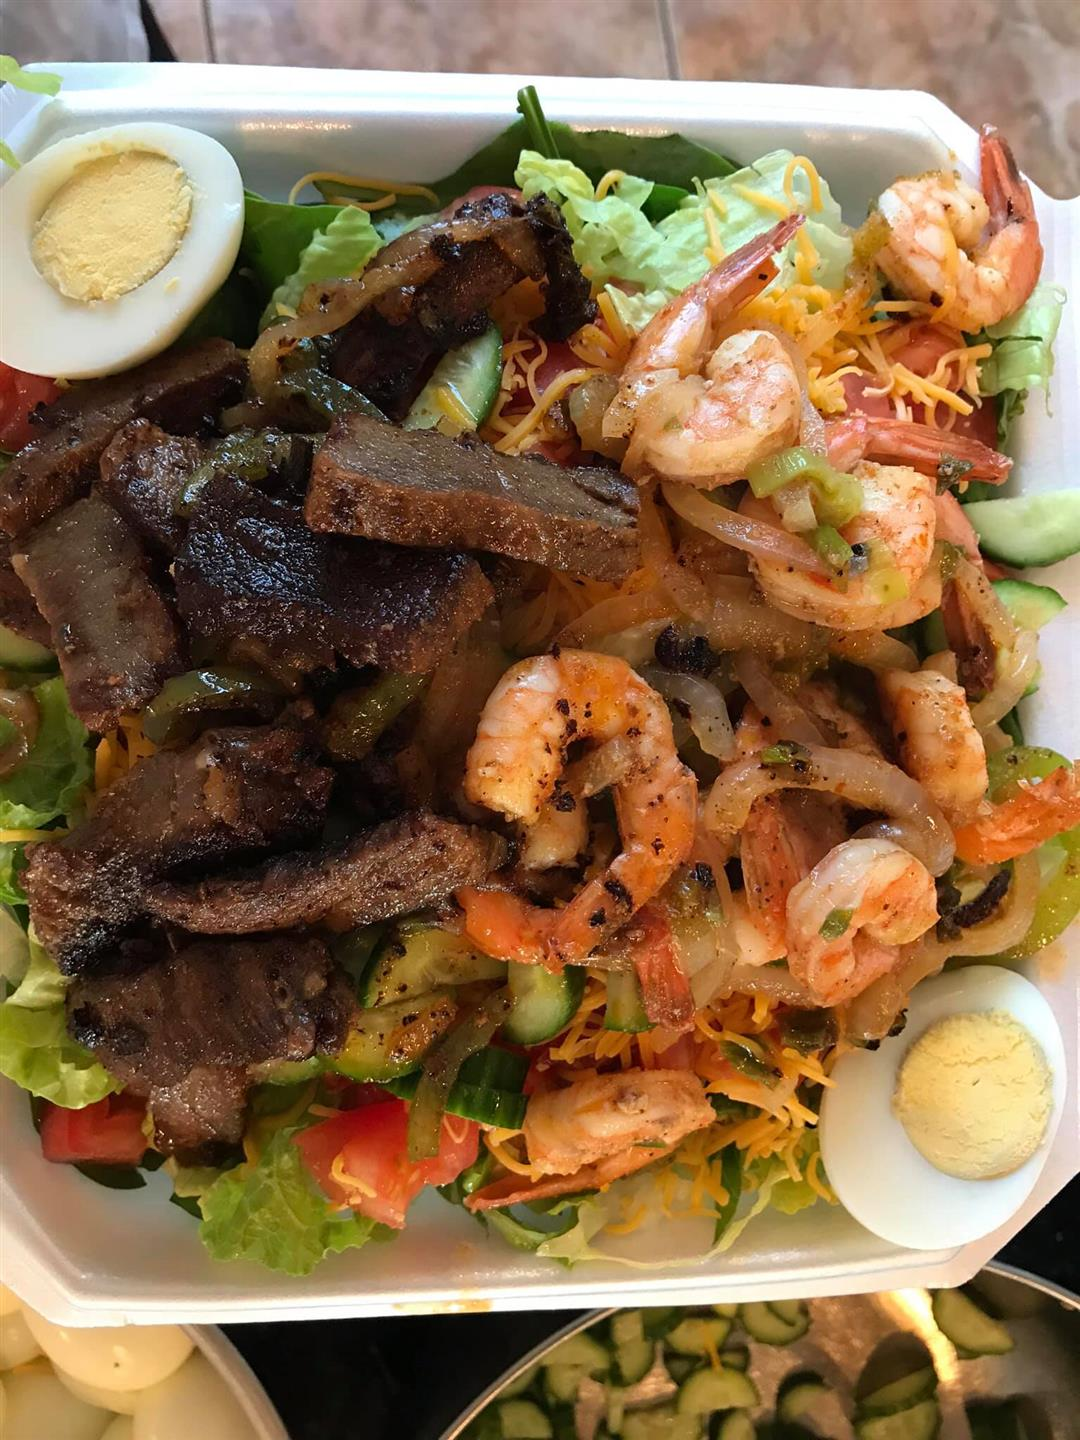 salad topped with shrimp and beef